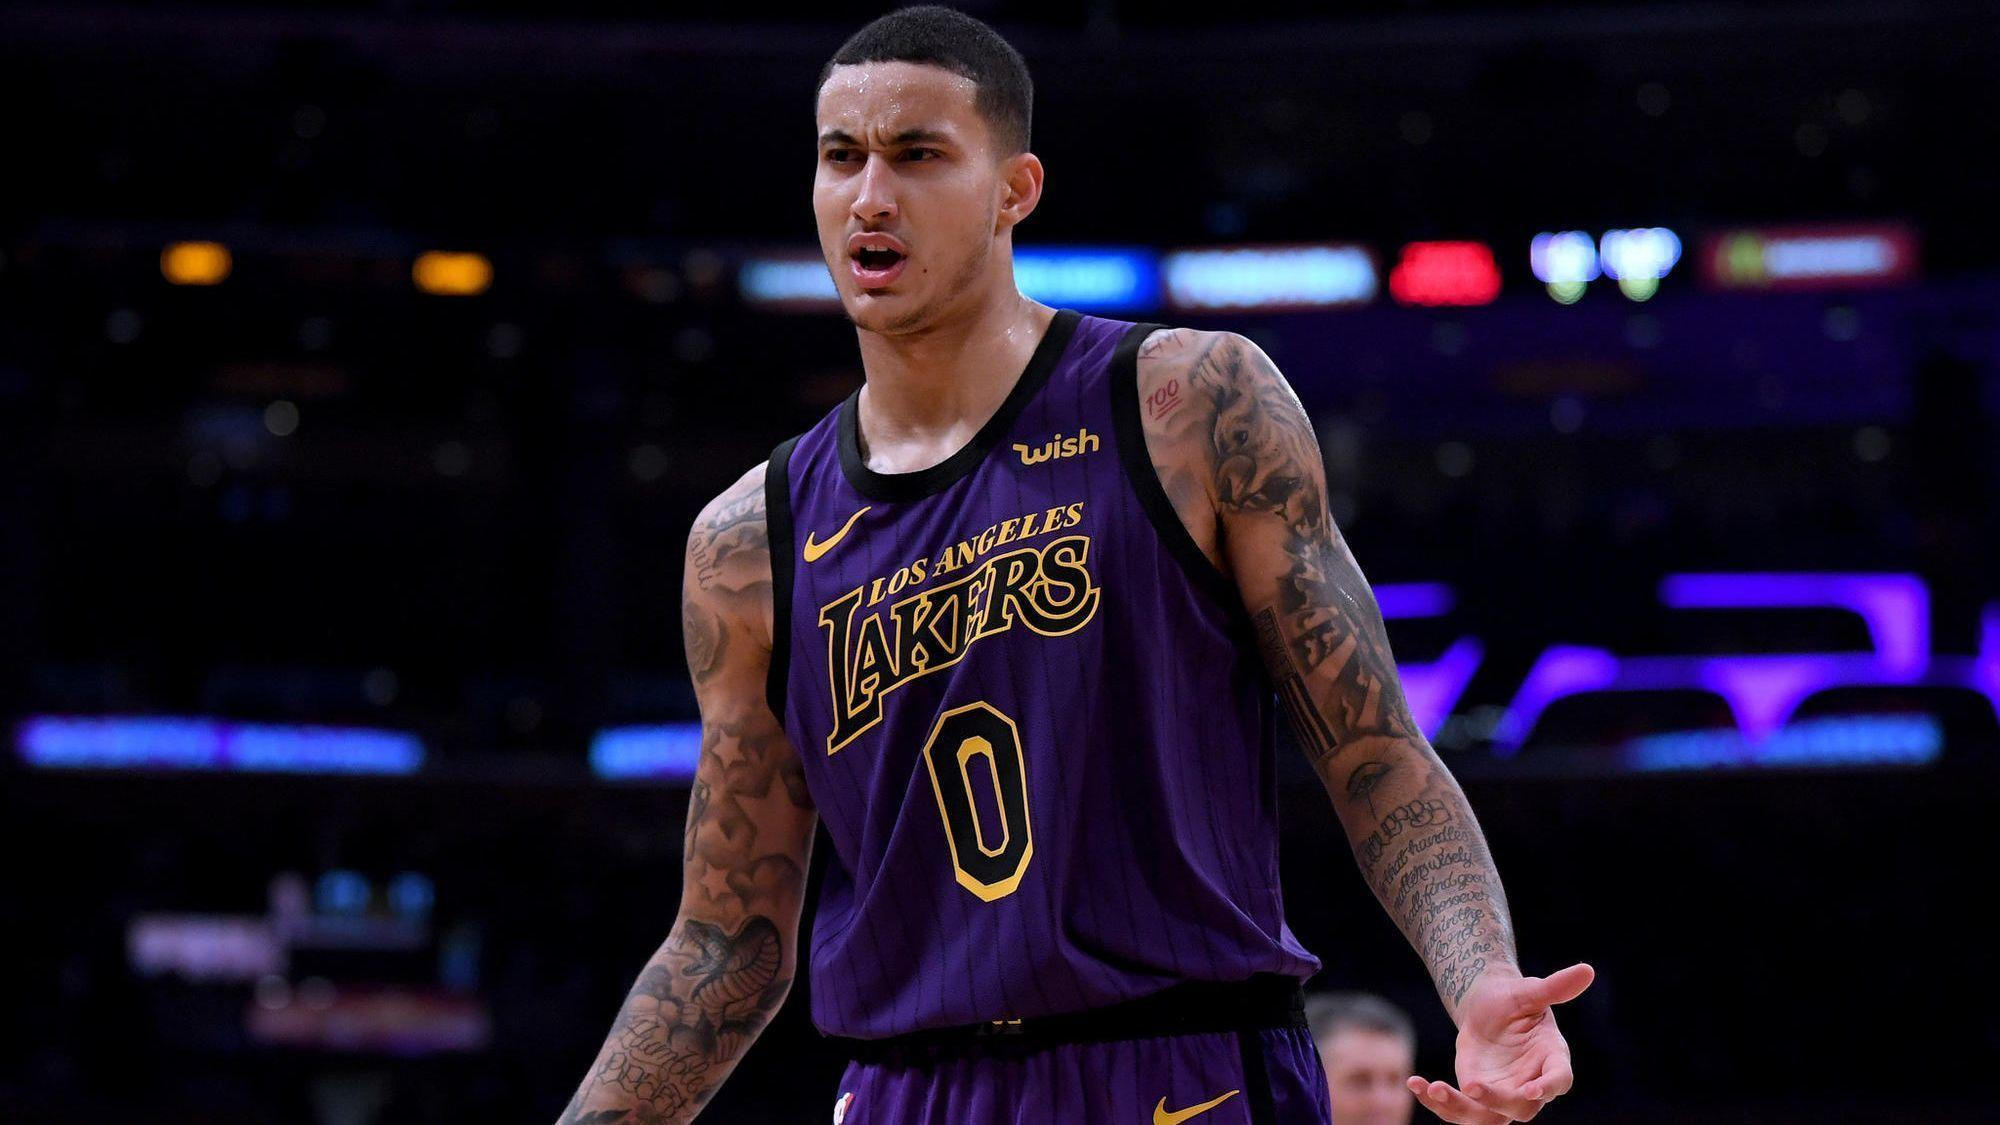 Lakers' Kyle Kuzma shines with 41 points against the team he grew up rooting for